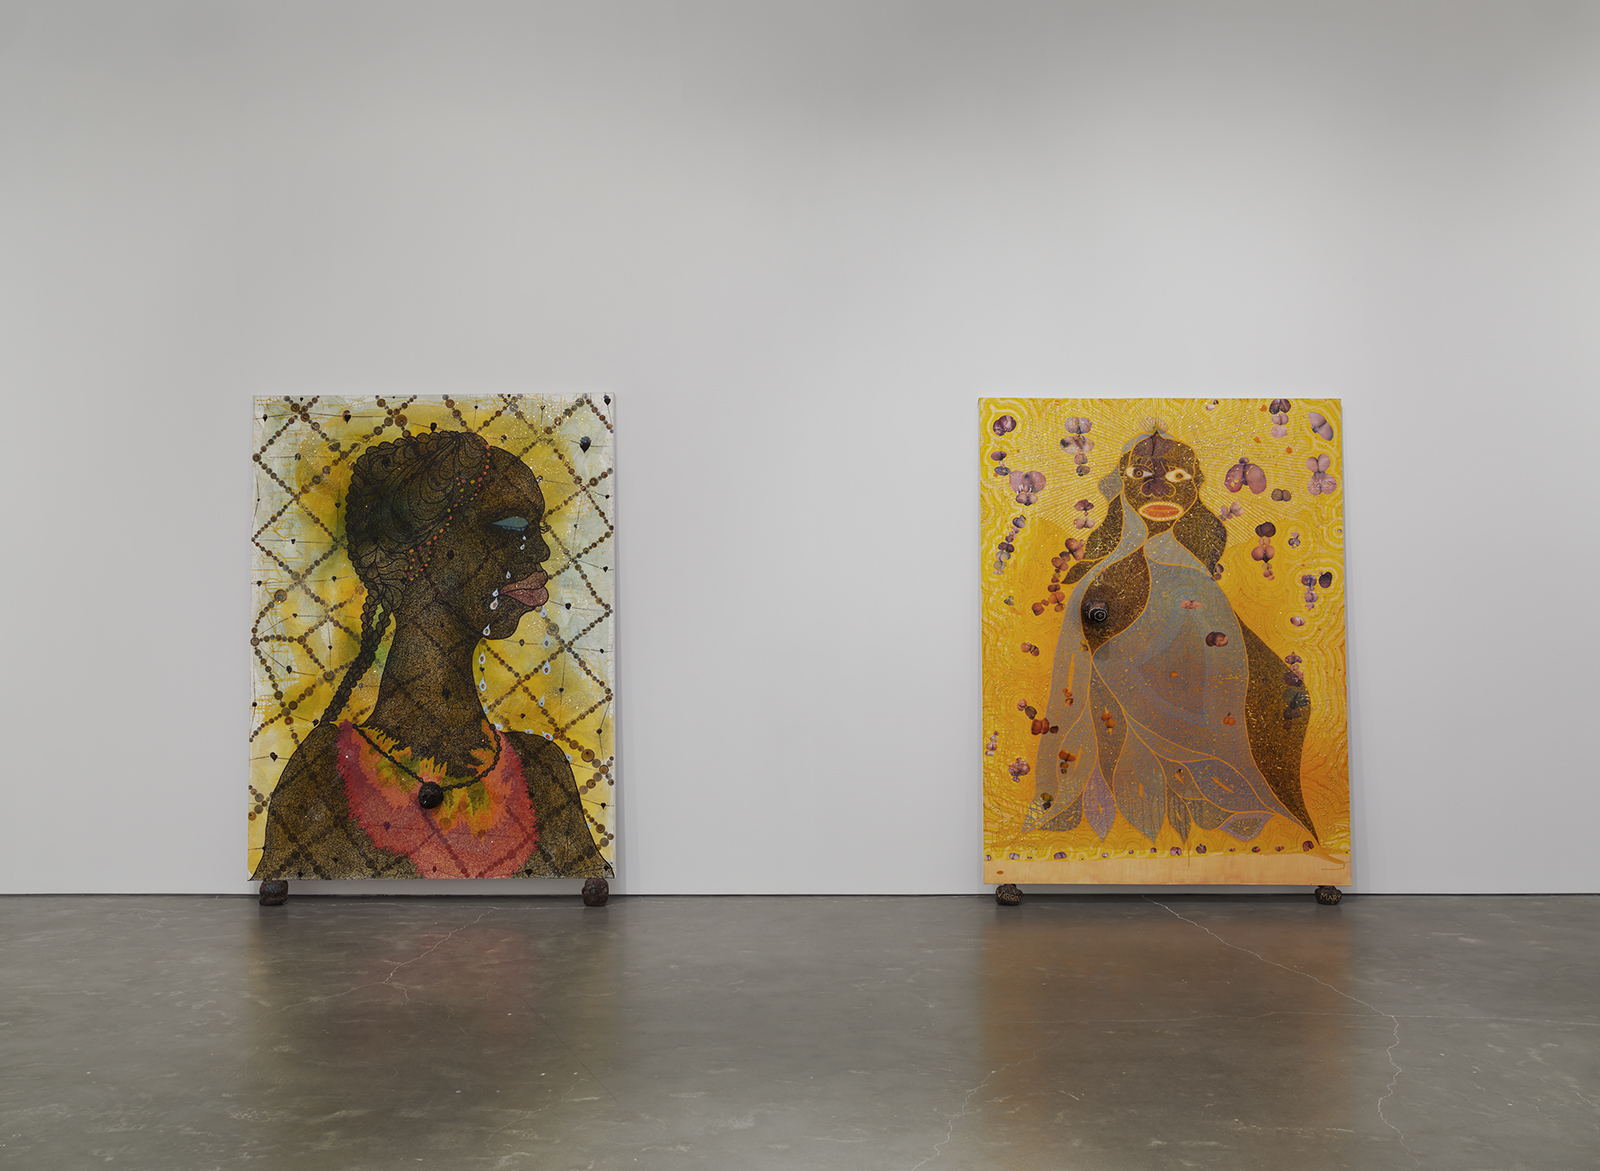 Photo by Maris Hutchinson/EPW All artworks © Chris Ofili. Courtesy David Zwirner, New York/London